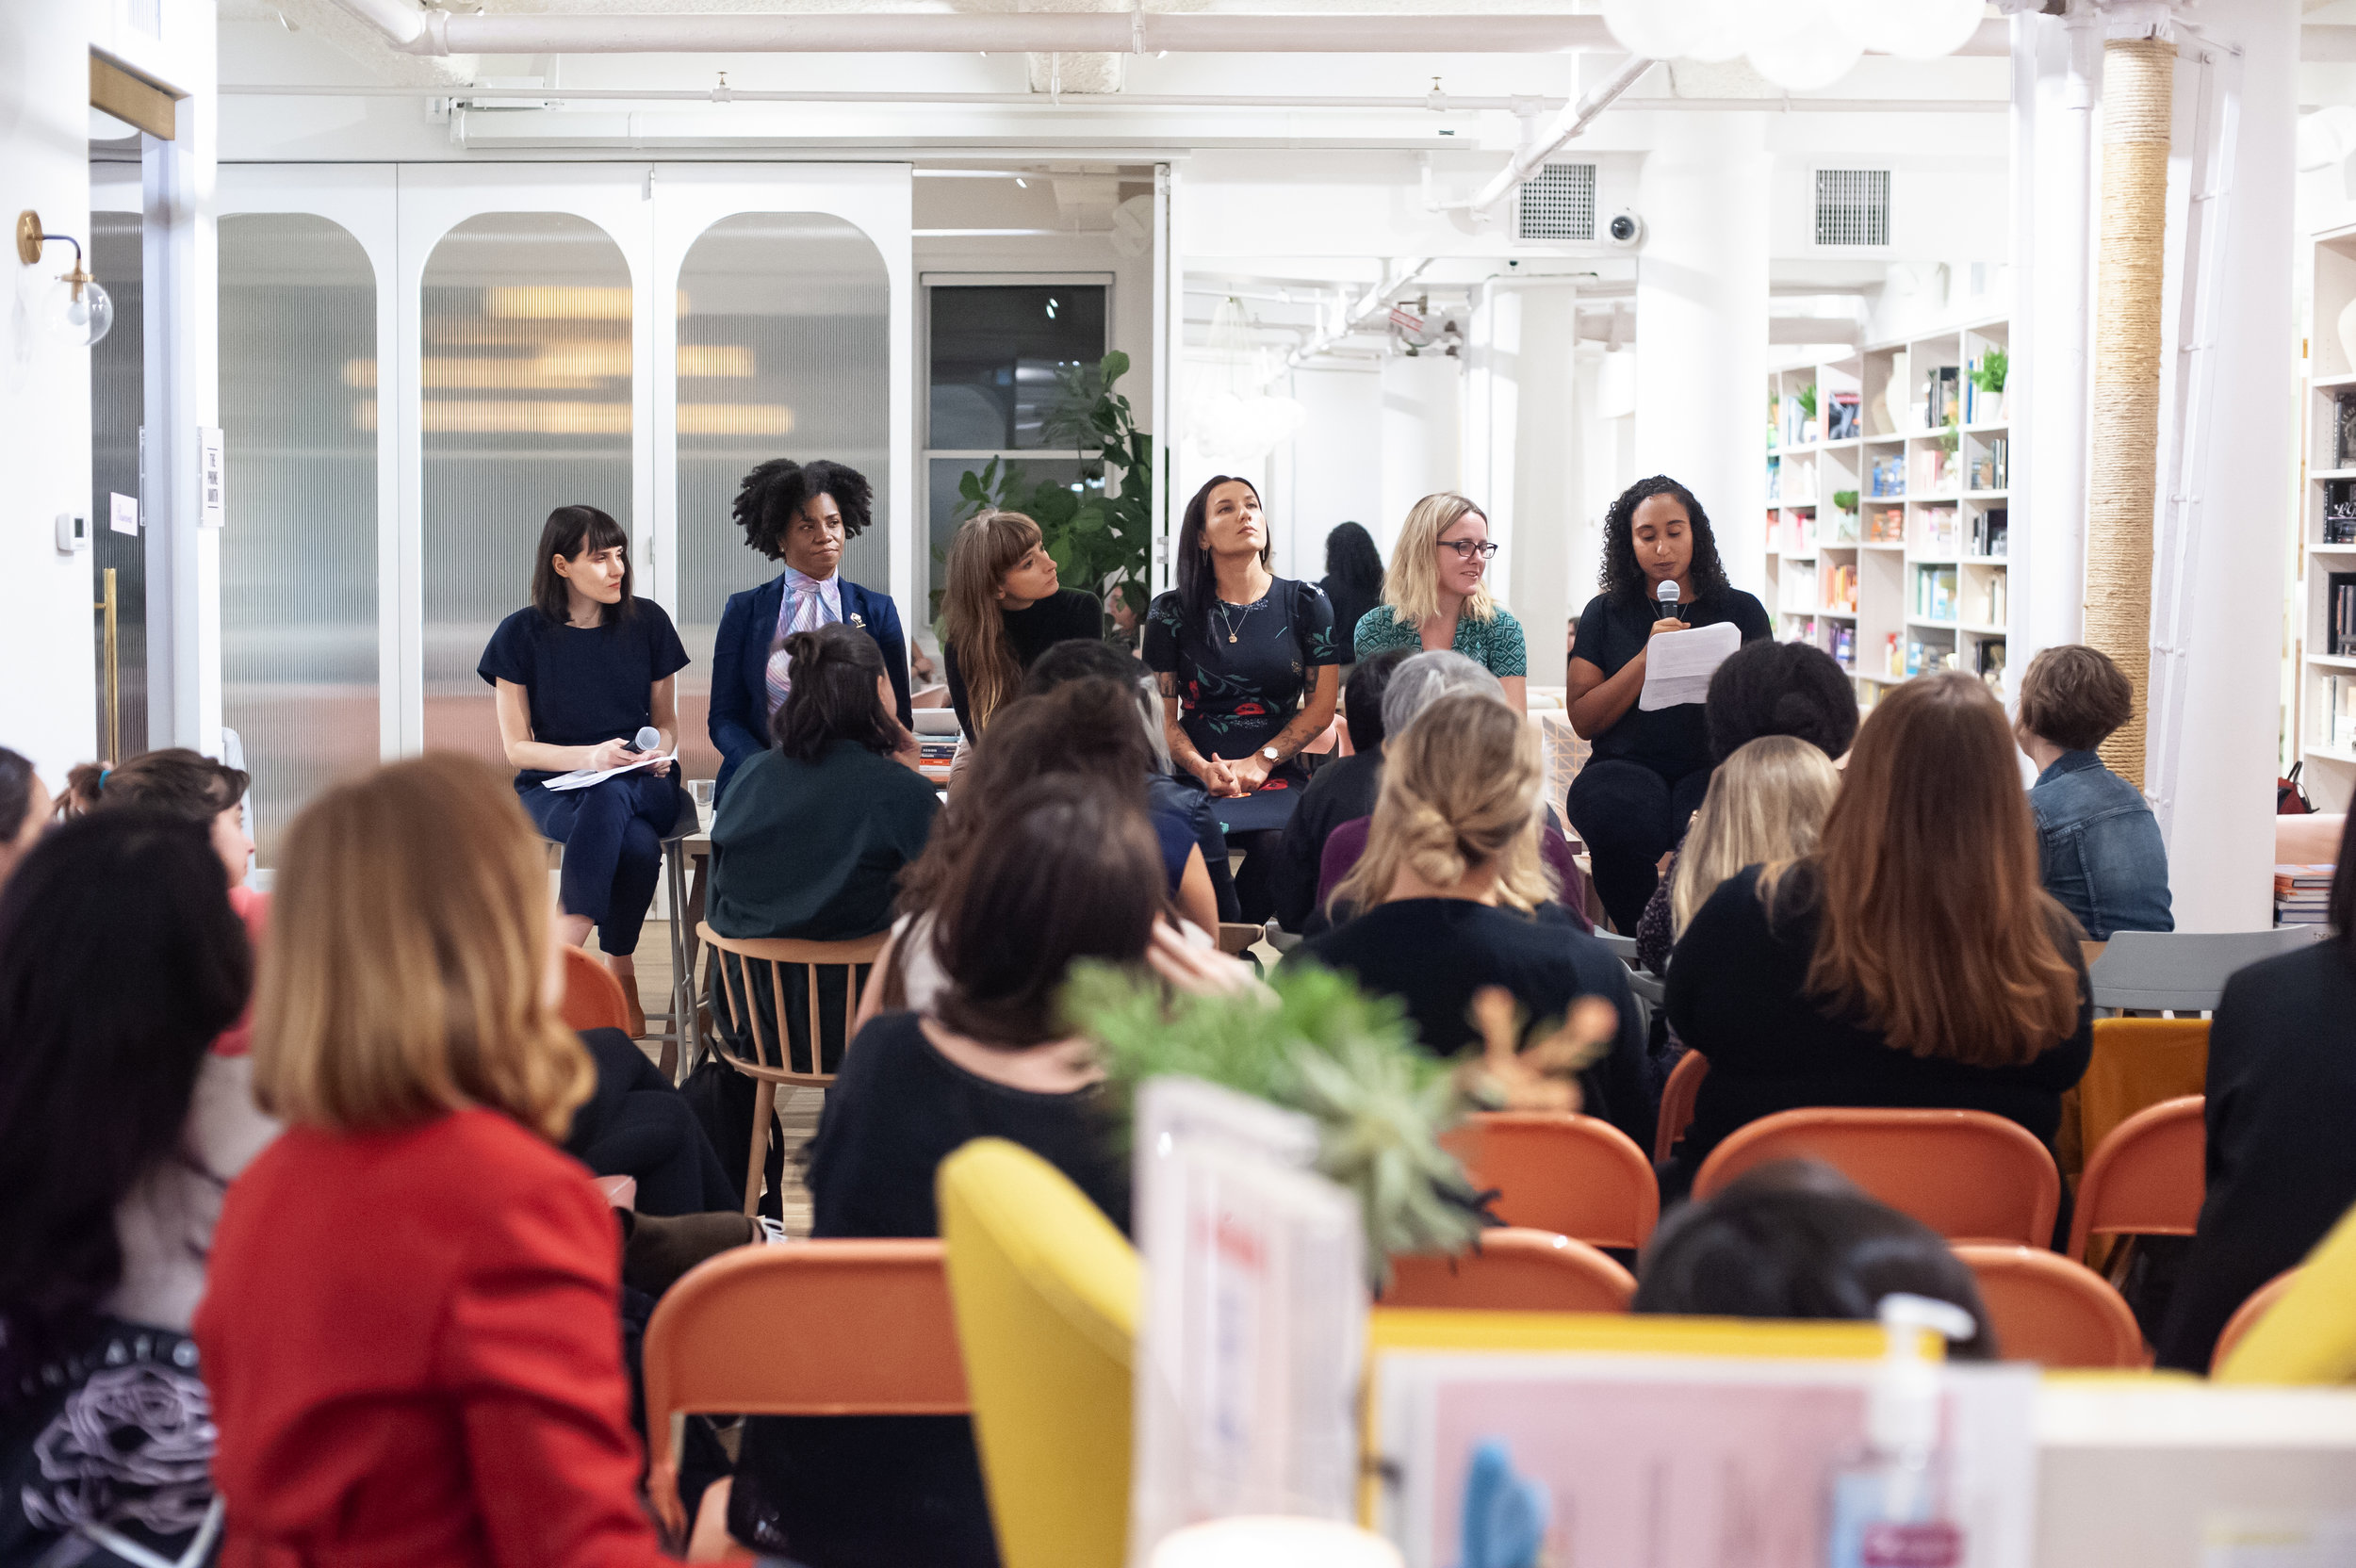 From Left: Natalka Burian, Freya Project co-founder, and readers Crystal McCreary, Hermione Hoby, Melissa Febos, Michele Filgate, and Naima Coster. Photo by Keira Chang.